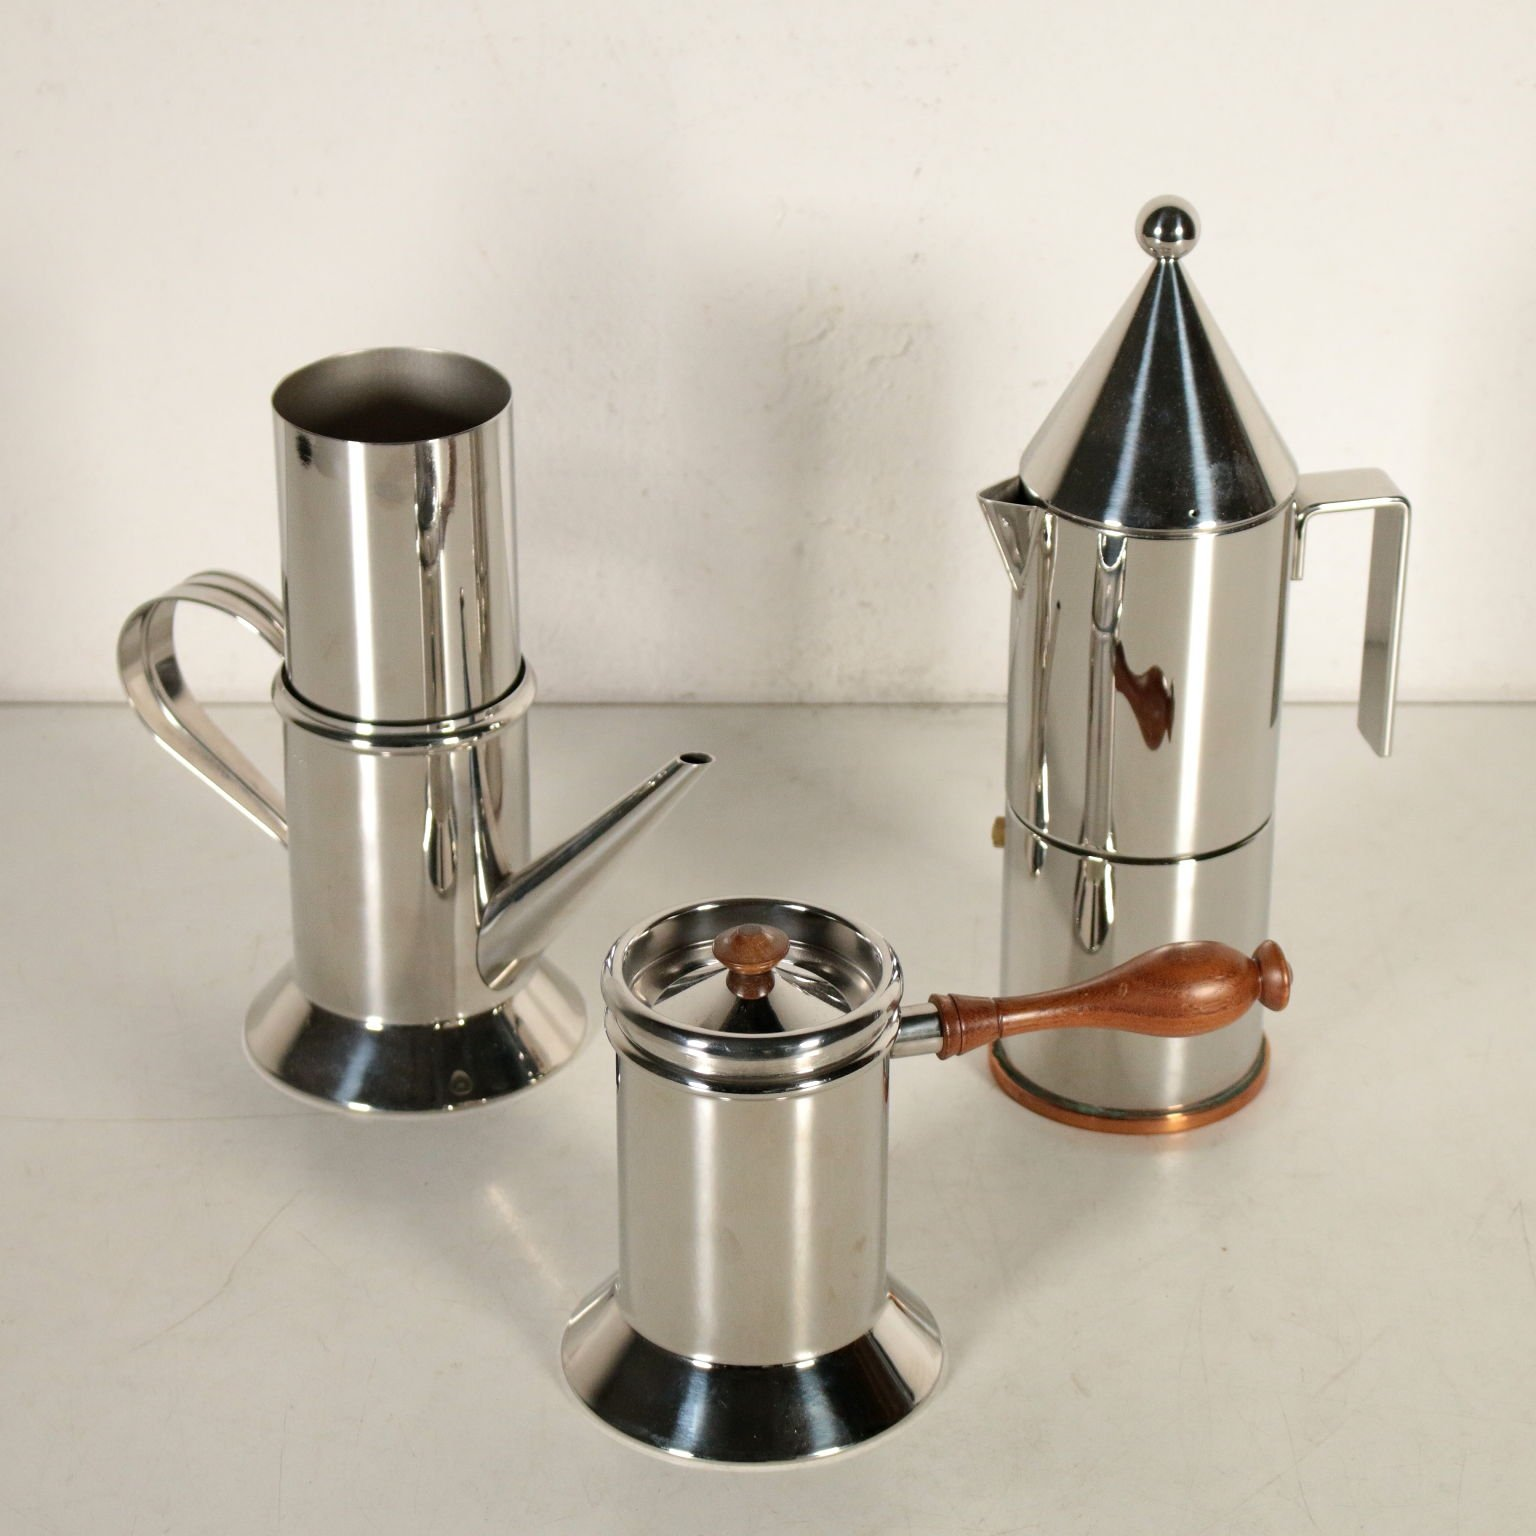 exclusive range authorized site new collection Coffee Maker Set by Aldo Rossi & Riccardo Dalisi for Officina Alessi, 1980s